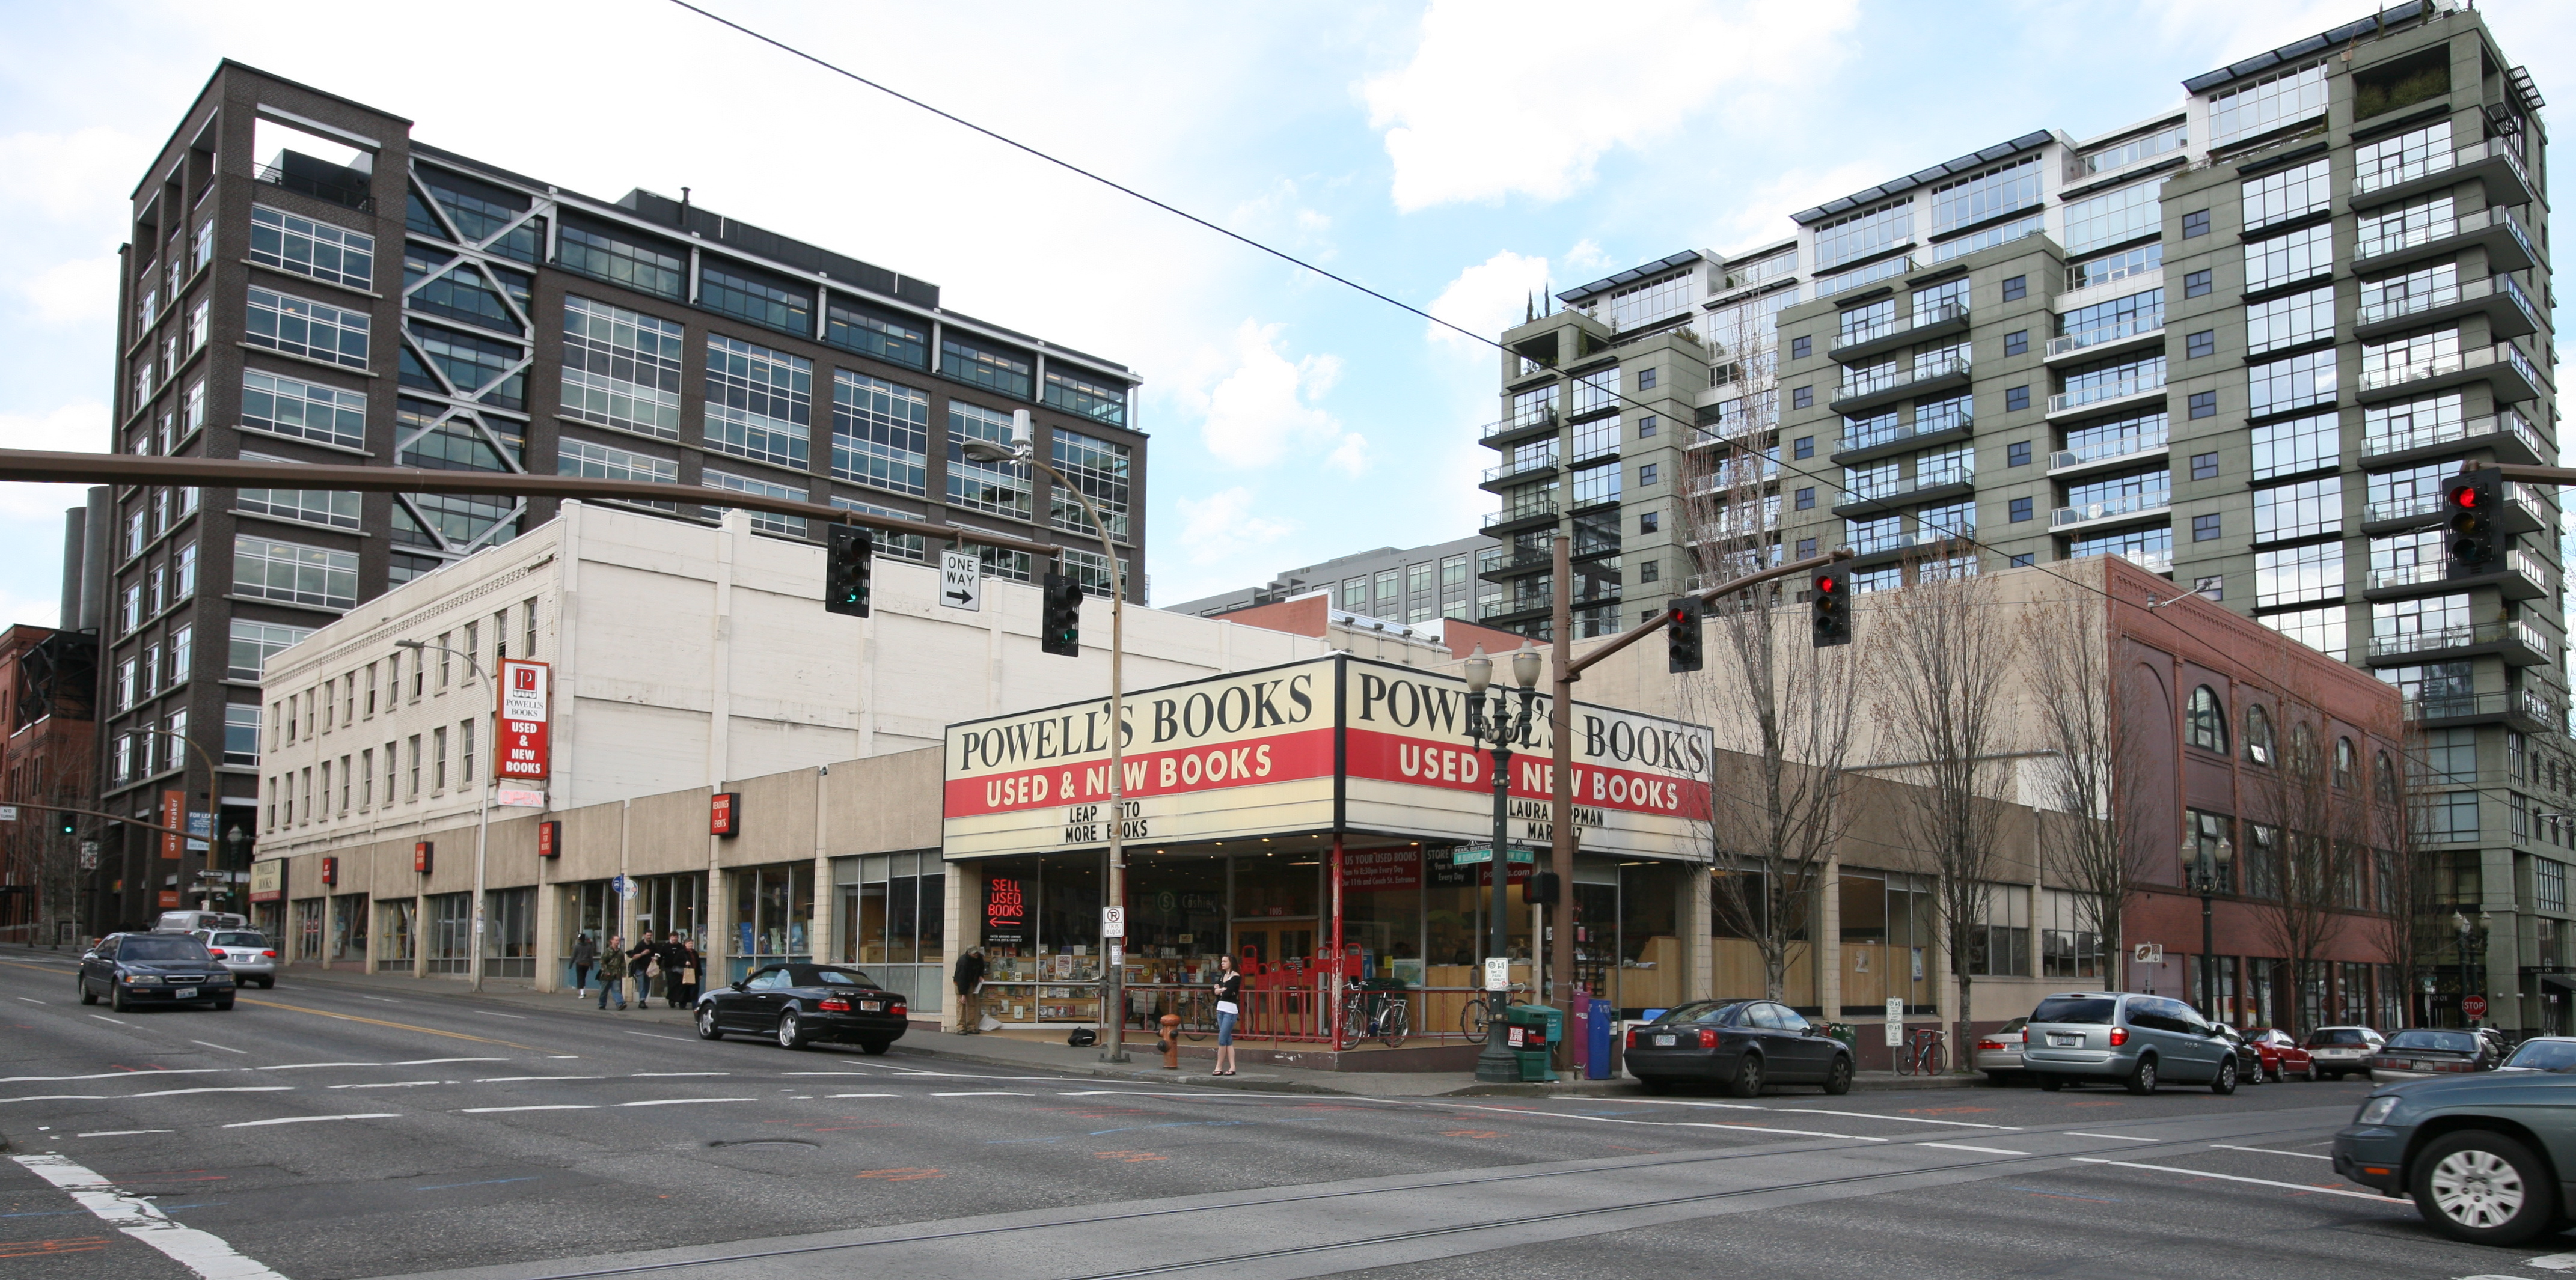 Once spurned by Powell's, Amazon will open a third brick-and-mortar store in Portland